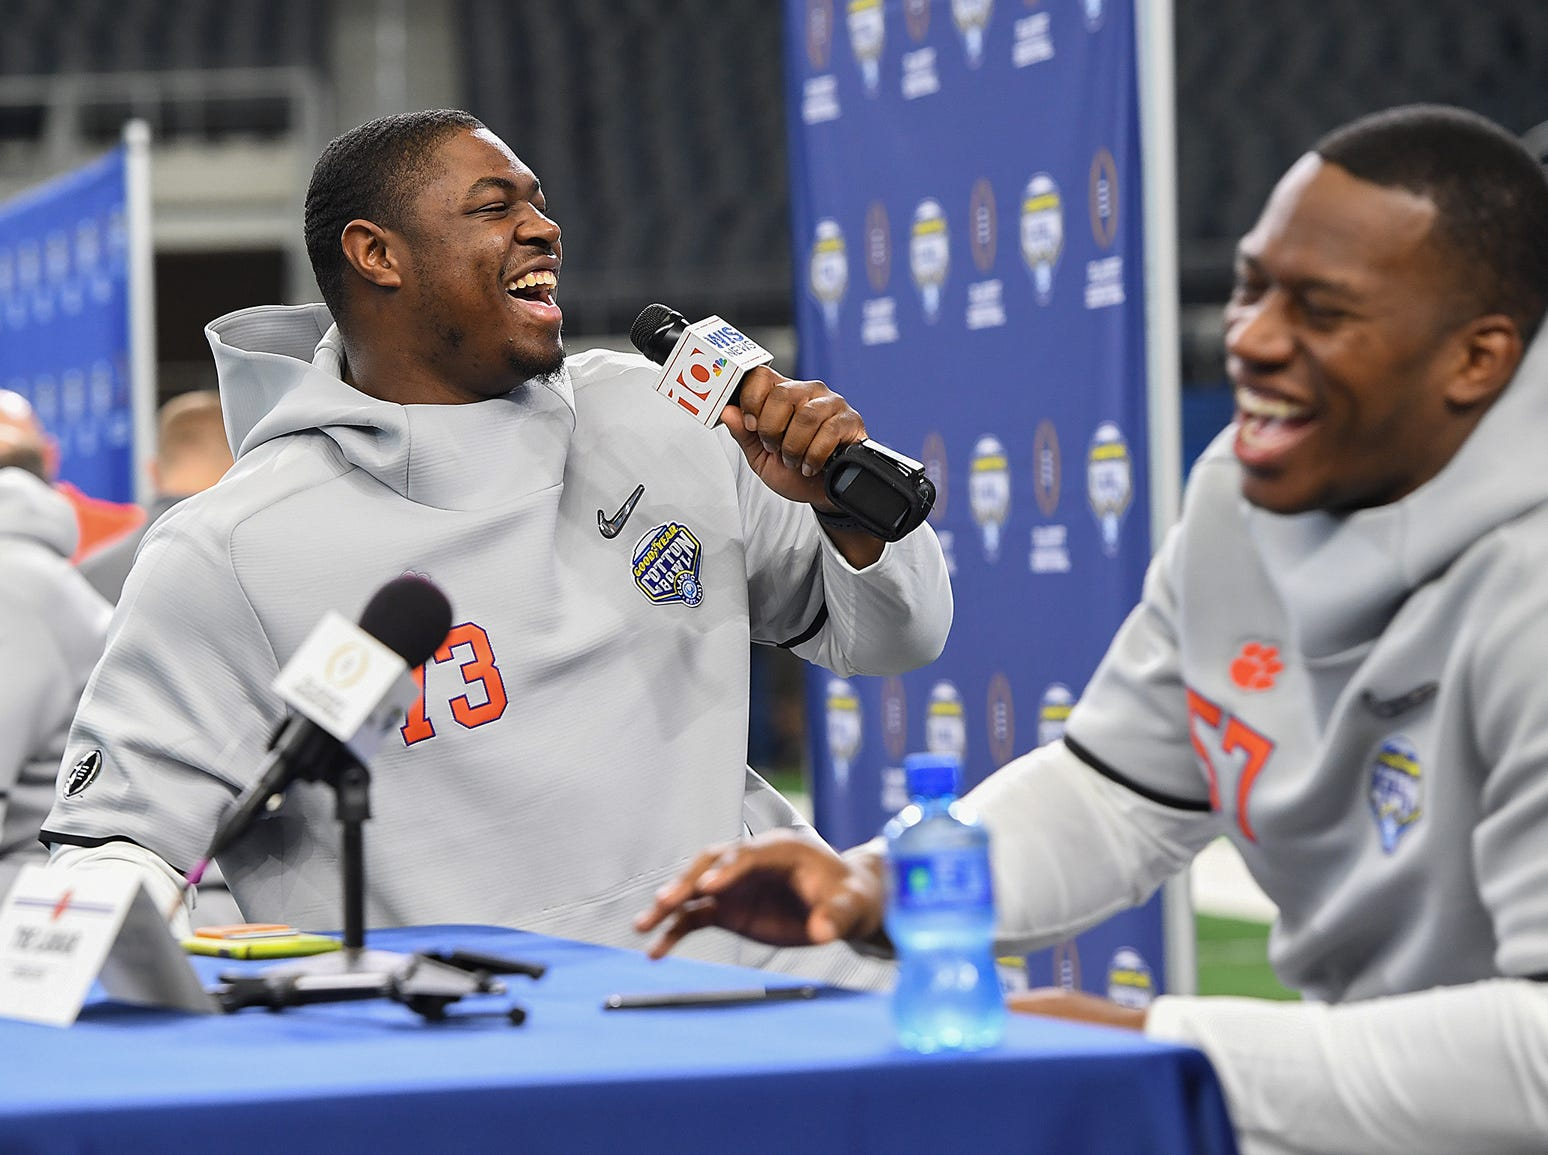 Clemson offensive lineman Tremayne Anchrum, left, laughs while interviewing linebacker Tre Lamar during the Tigers Cotton Bowl media day at AT&T Stadium in Arlington, TX Thursday, December 27, 2018.